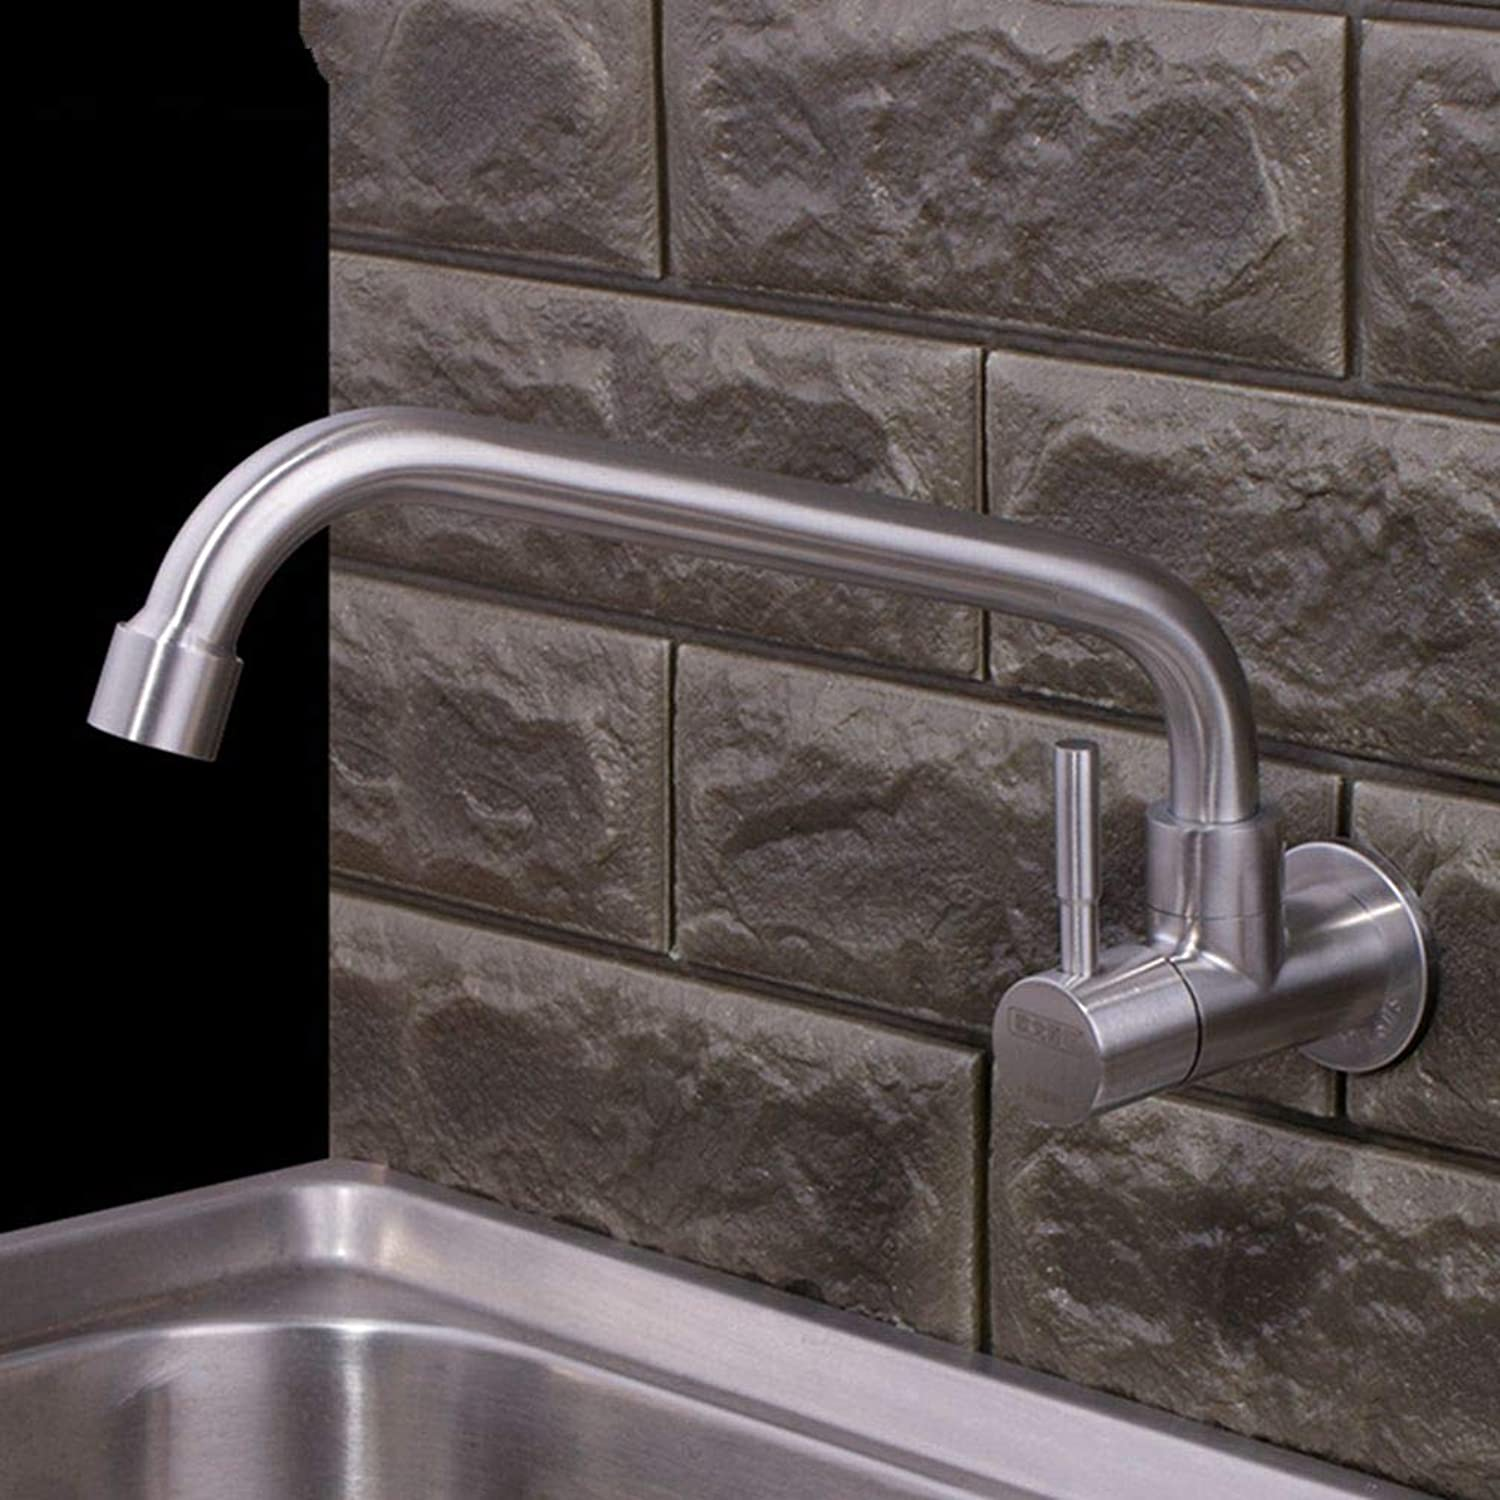 FZHLR Single Handle Brushed Surface Kitchen Sink Tap 304 Stainless Steel Single Cold Water Faucet Brushed Wall Mounted